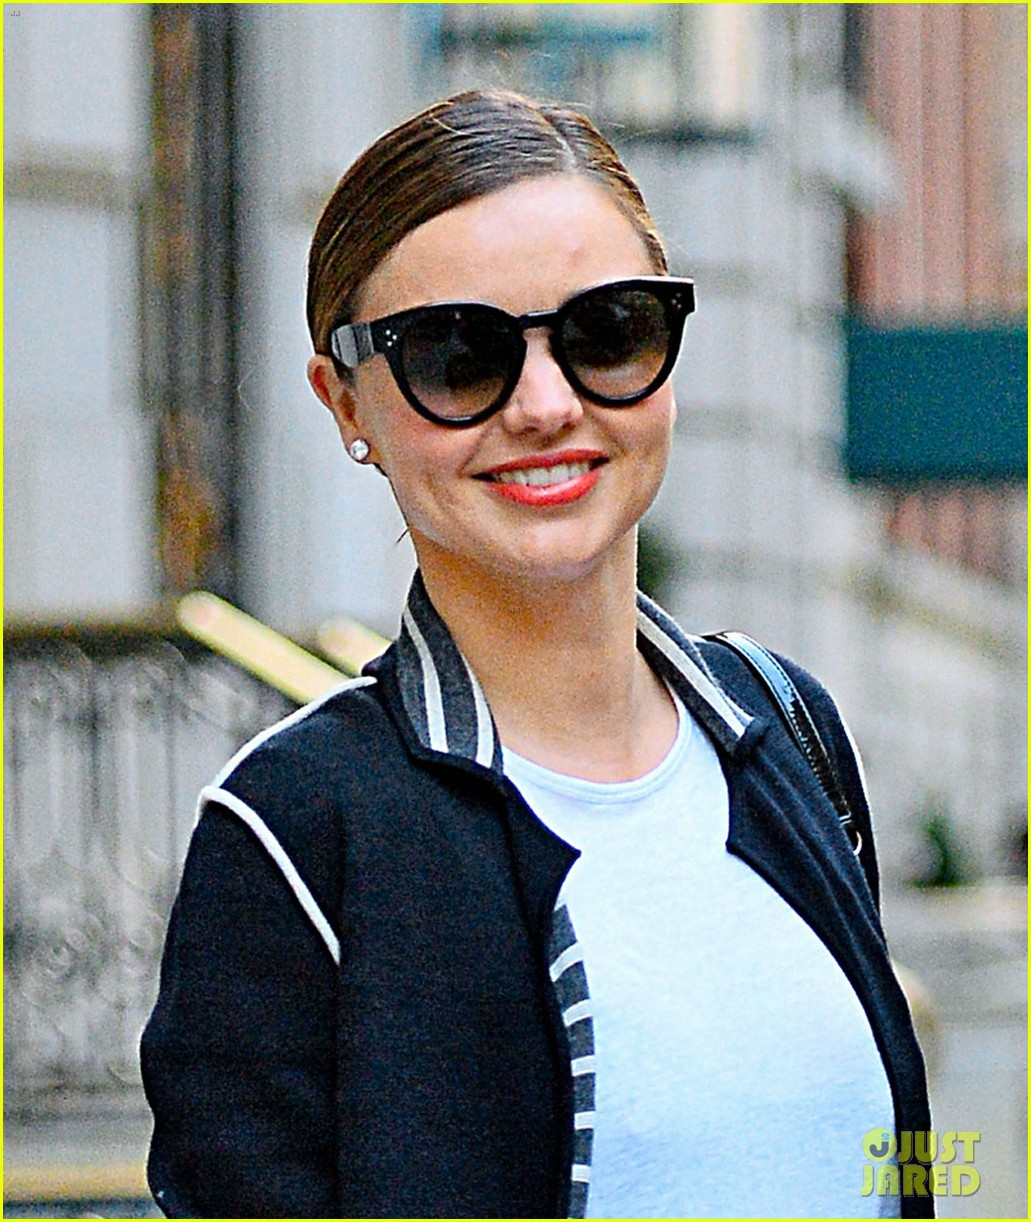 miranda kerr sidewalk runway new york city 033095411